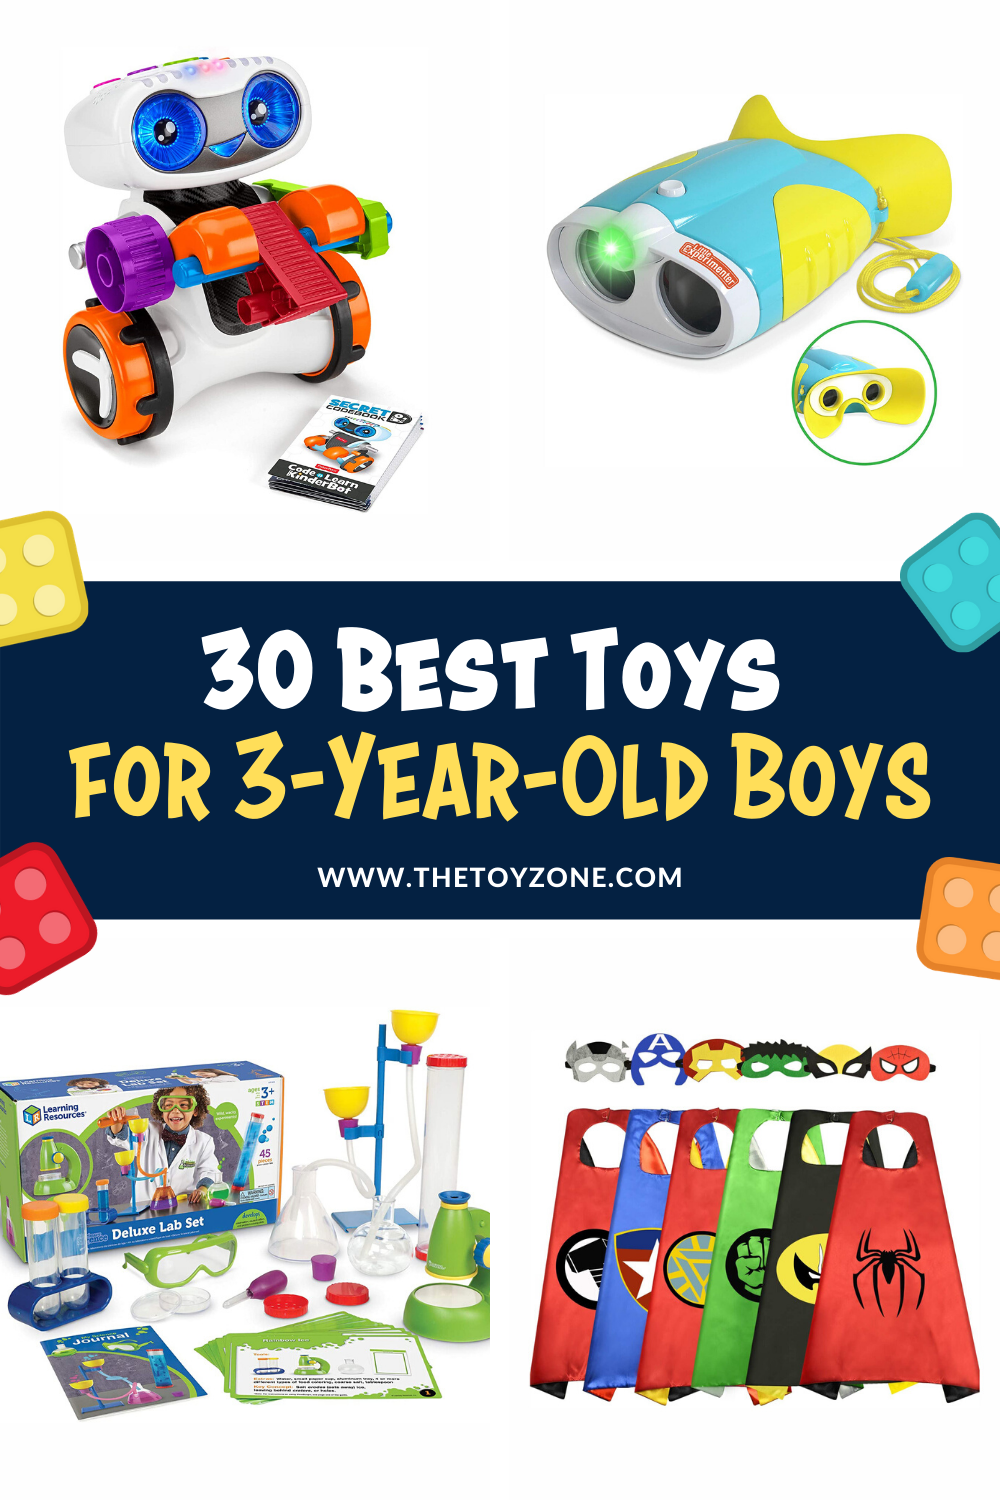 30 Best Toys for 3-Year-Old Boys in 2020 - TheToyZone in ...